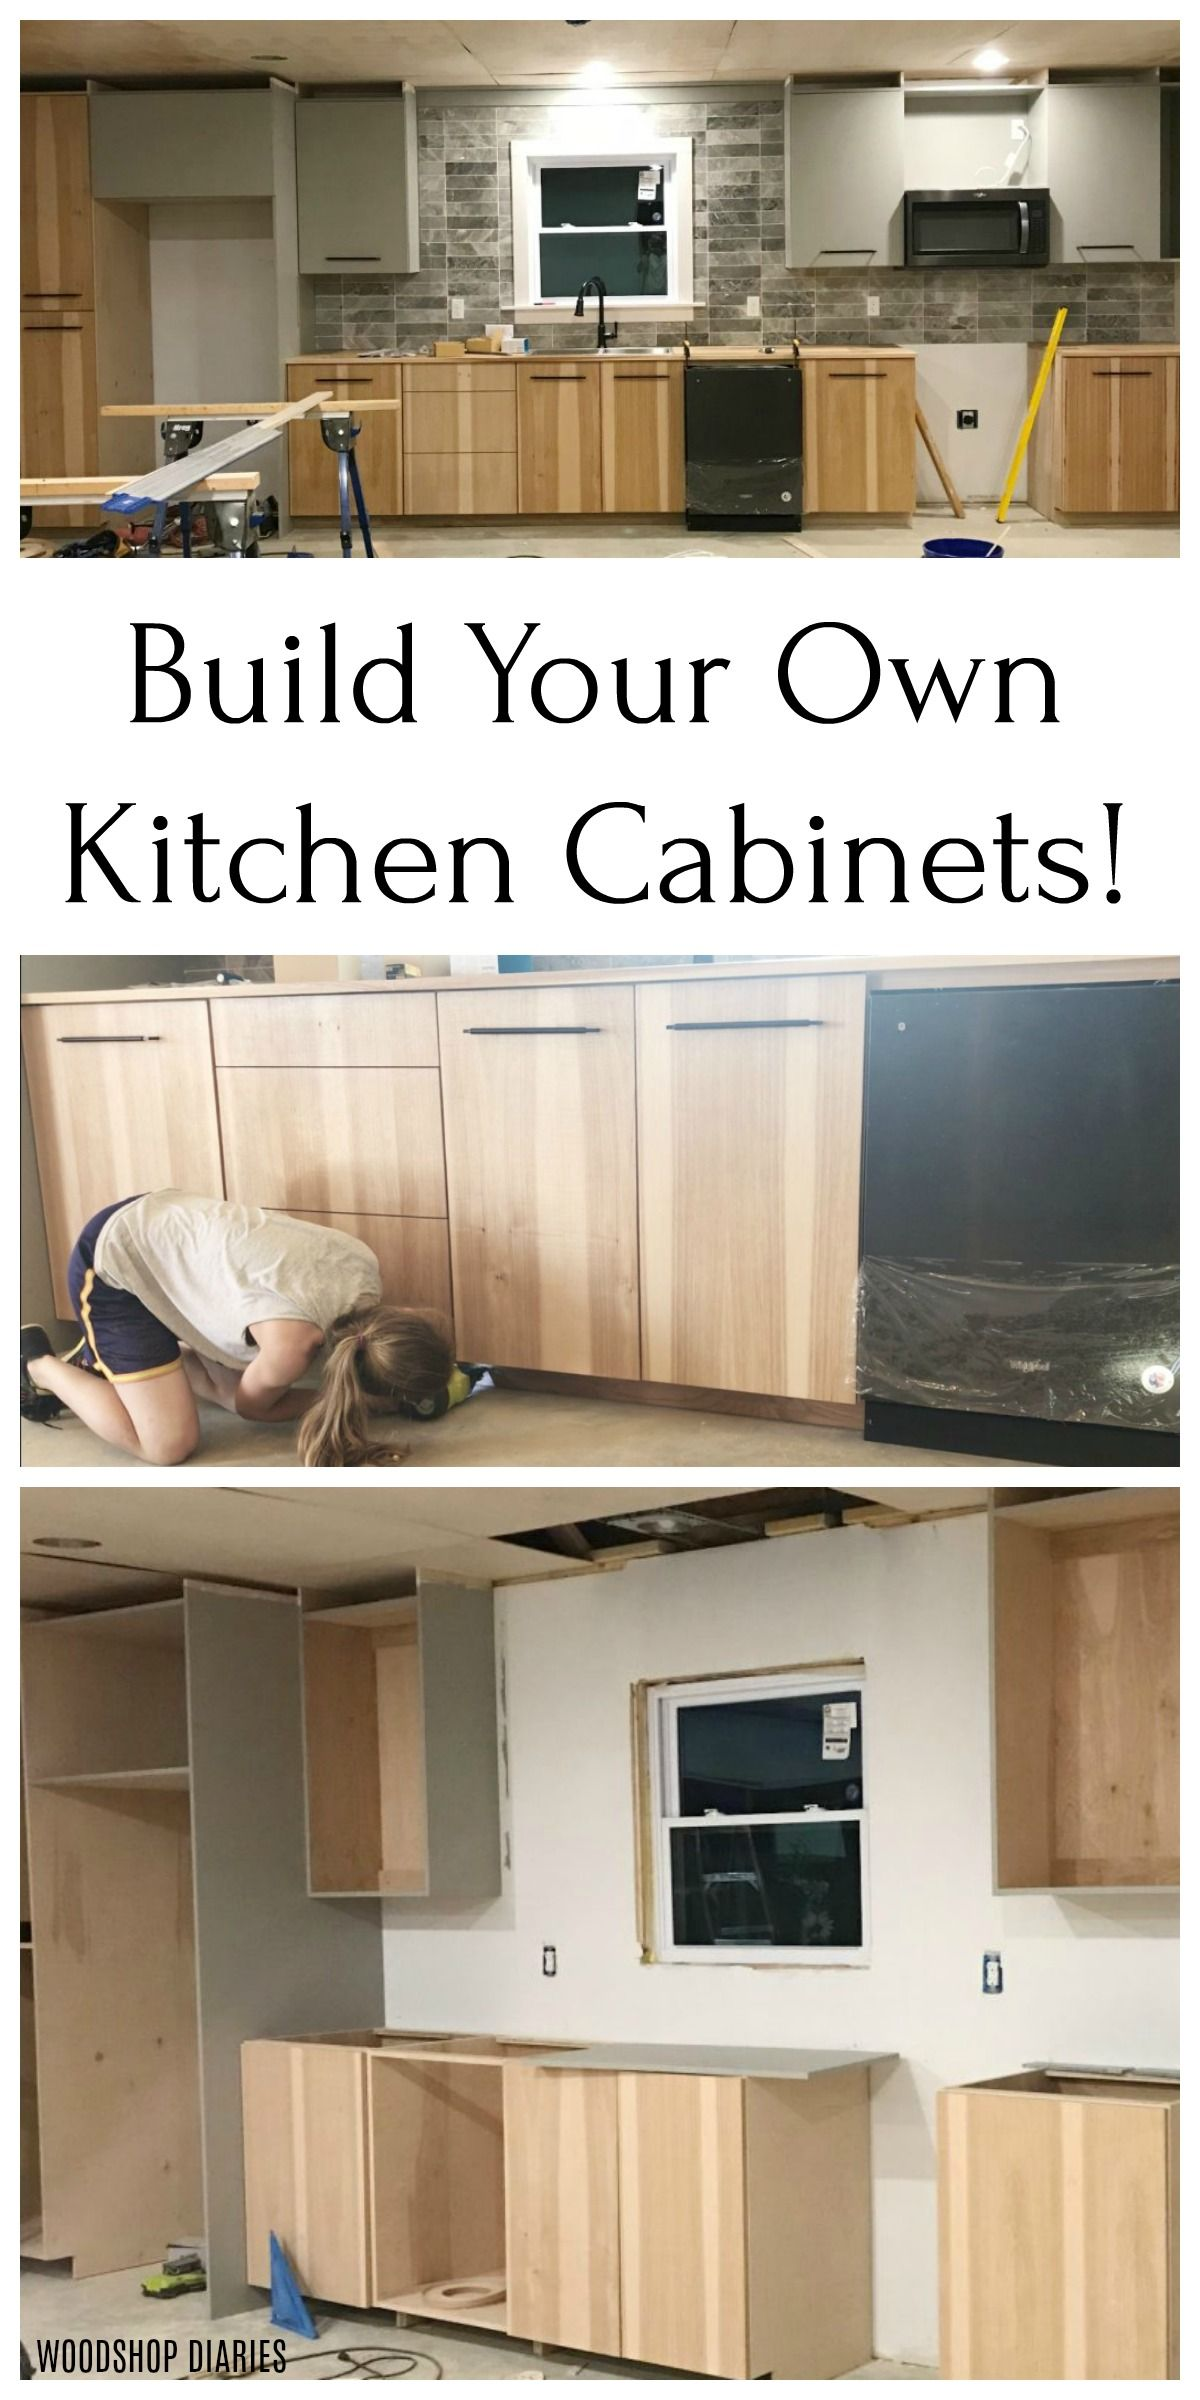 Diy Kitchen Cabinets Made From Only Plywood In 2020 Simple Woodworking Plans Diy Kitchen Cabinets Woodworking Cabinets